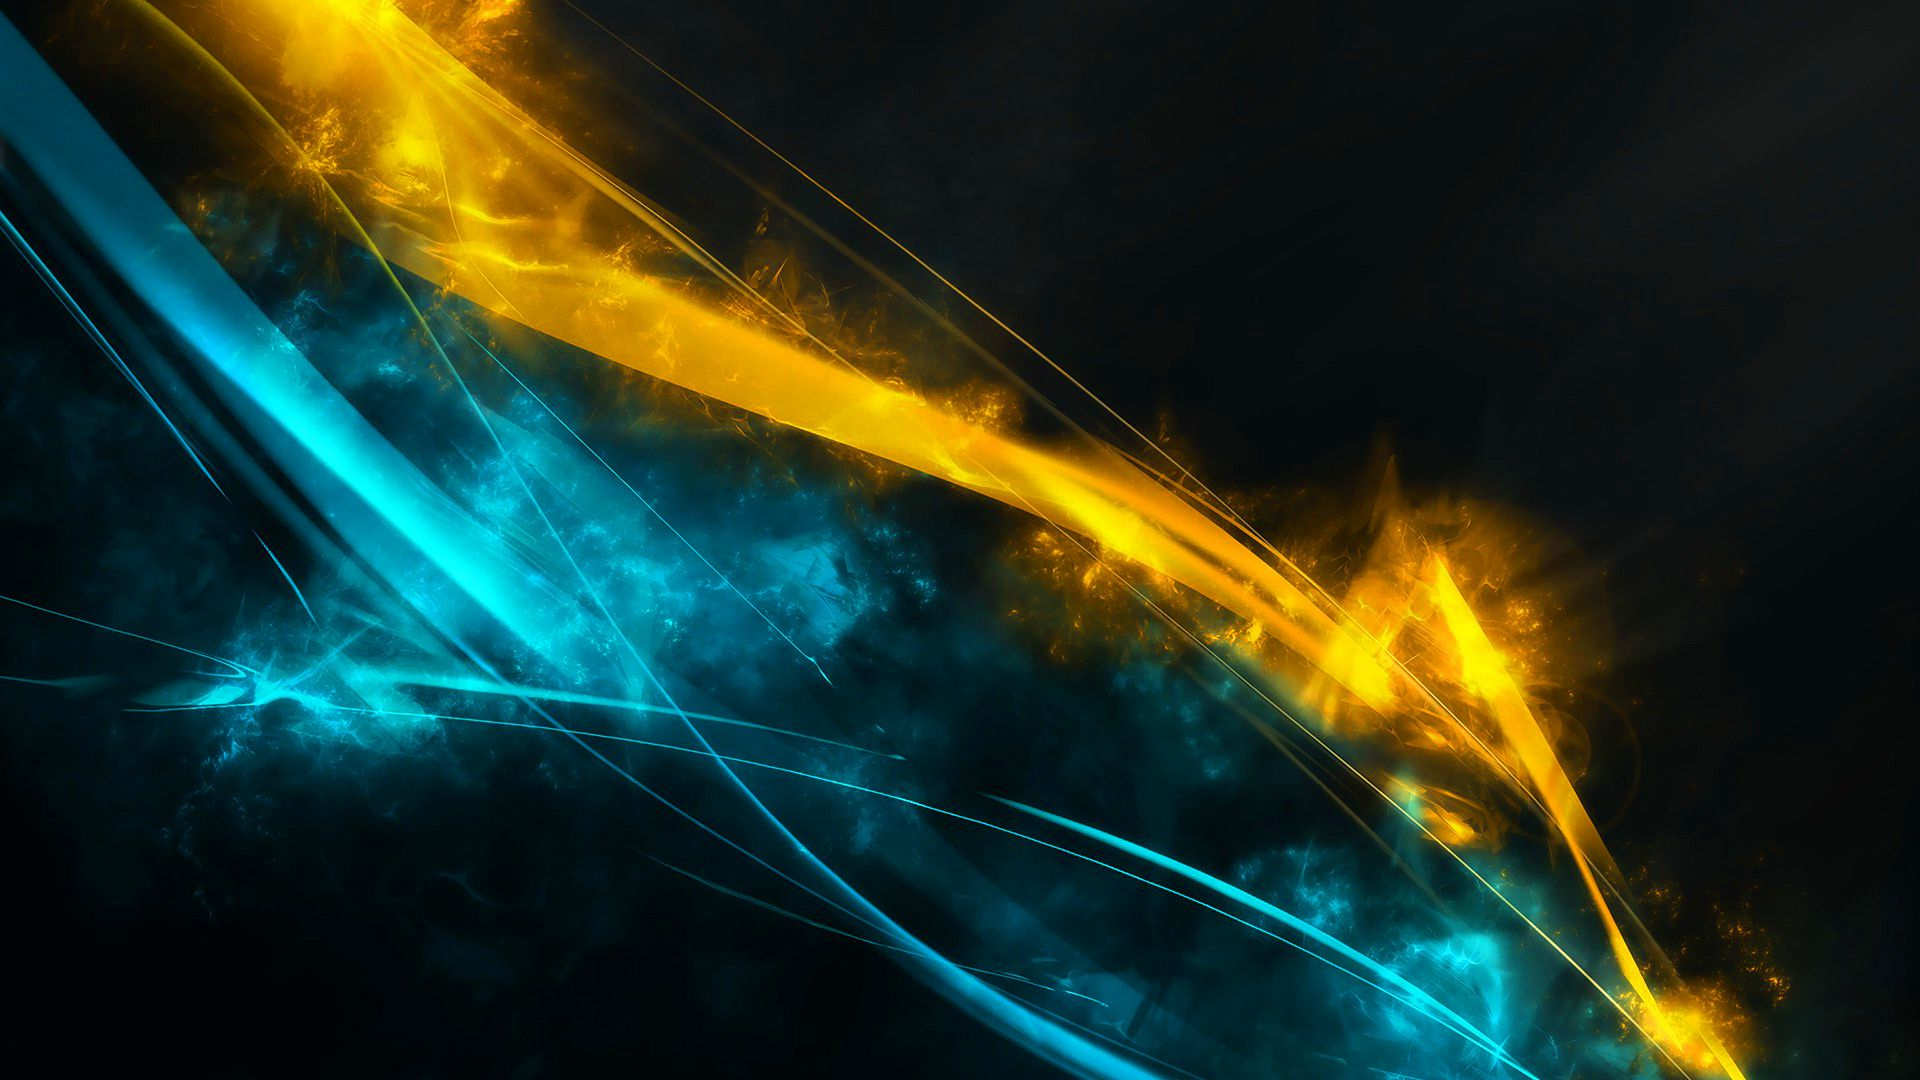 blue and yellow wallpapers Blue wallpapers, Abstract